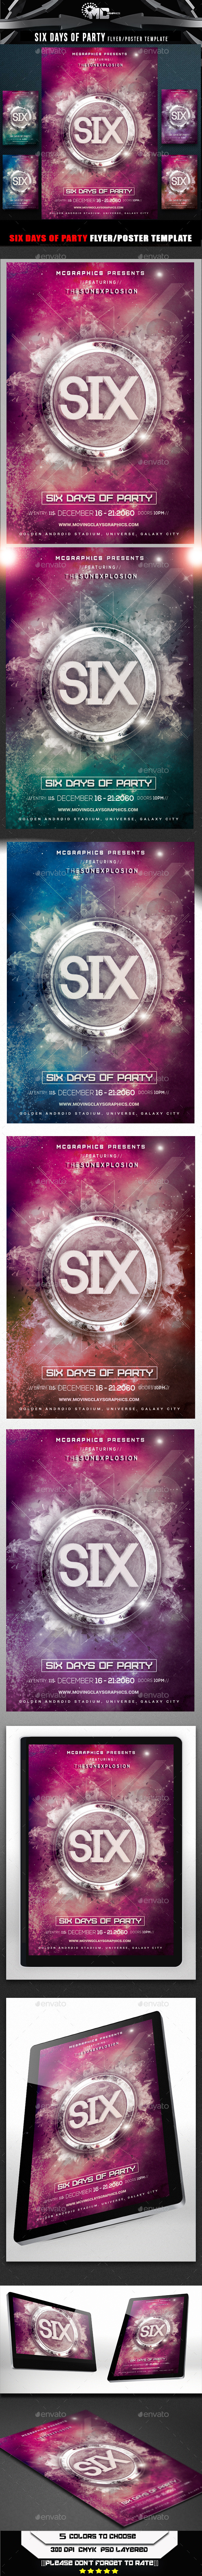 Six Days of Party Flyer Template - Clubs & Parties Events